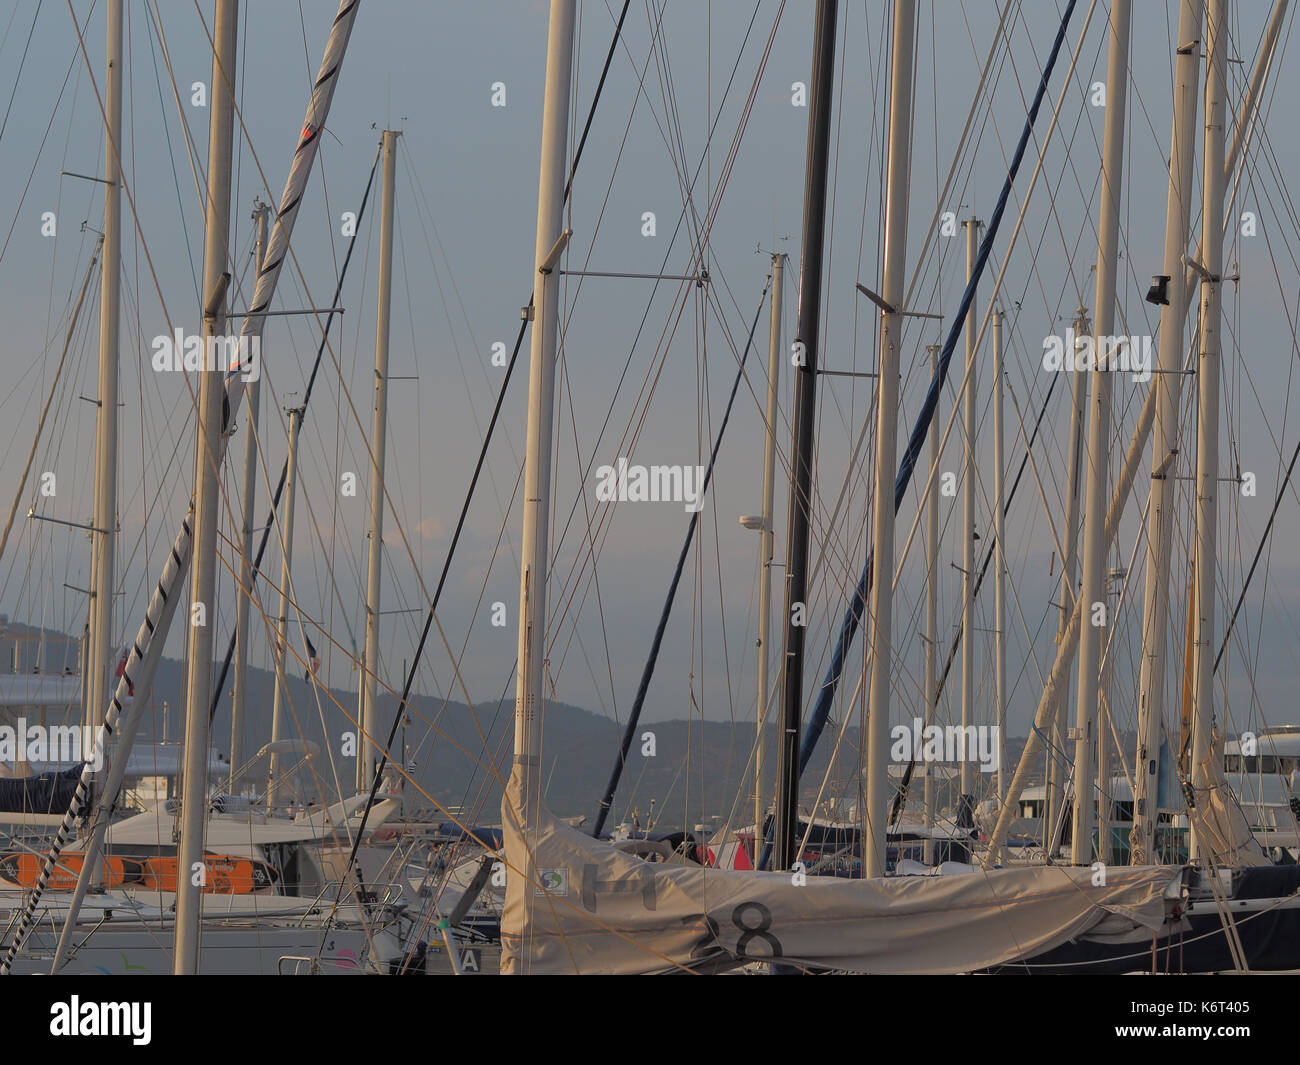 Saint-tropez, France - august 8 2017: A series of masts of multiple sailboats. - Stock Image